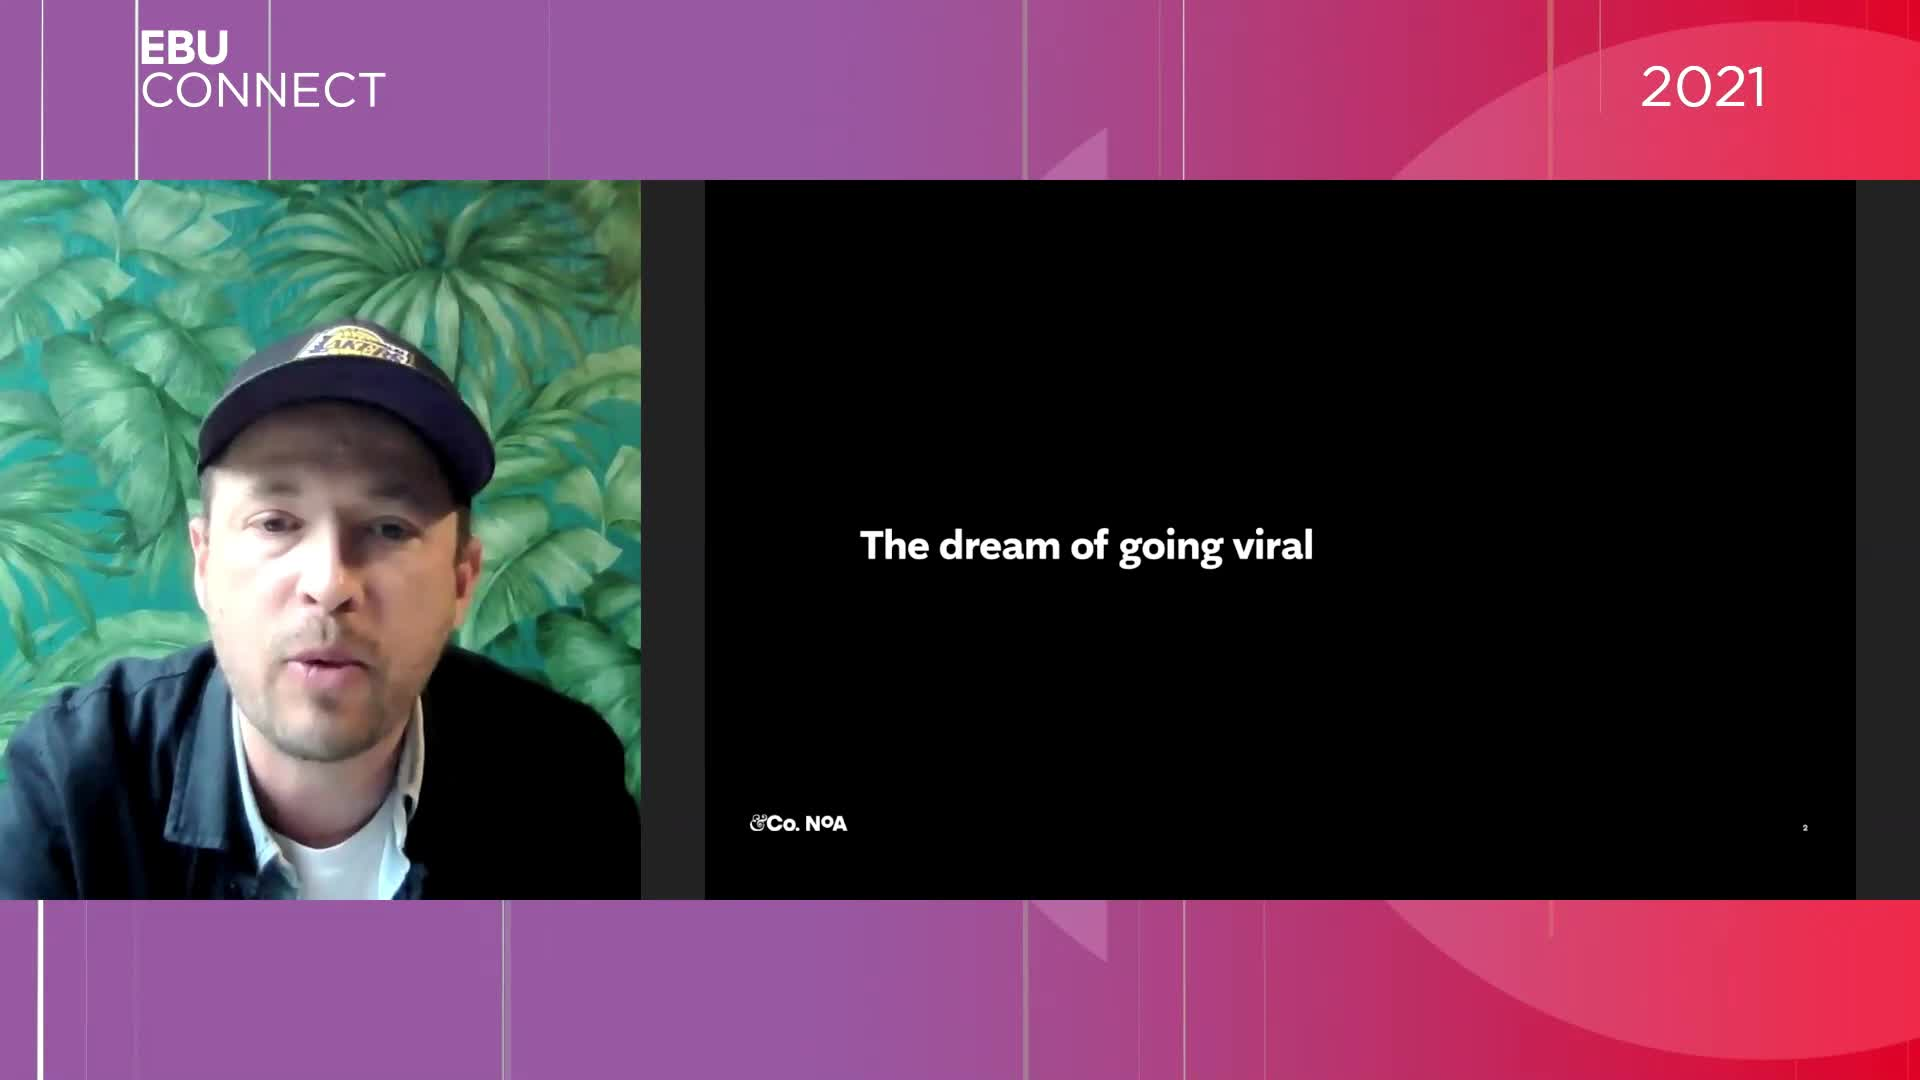 Cross Media Storytelling: Viral campaigns are not just a marketing strategy